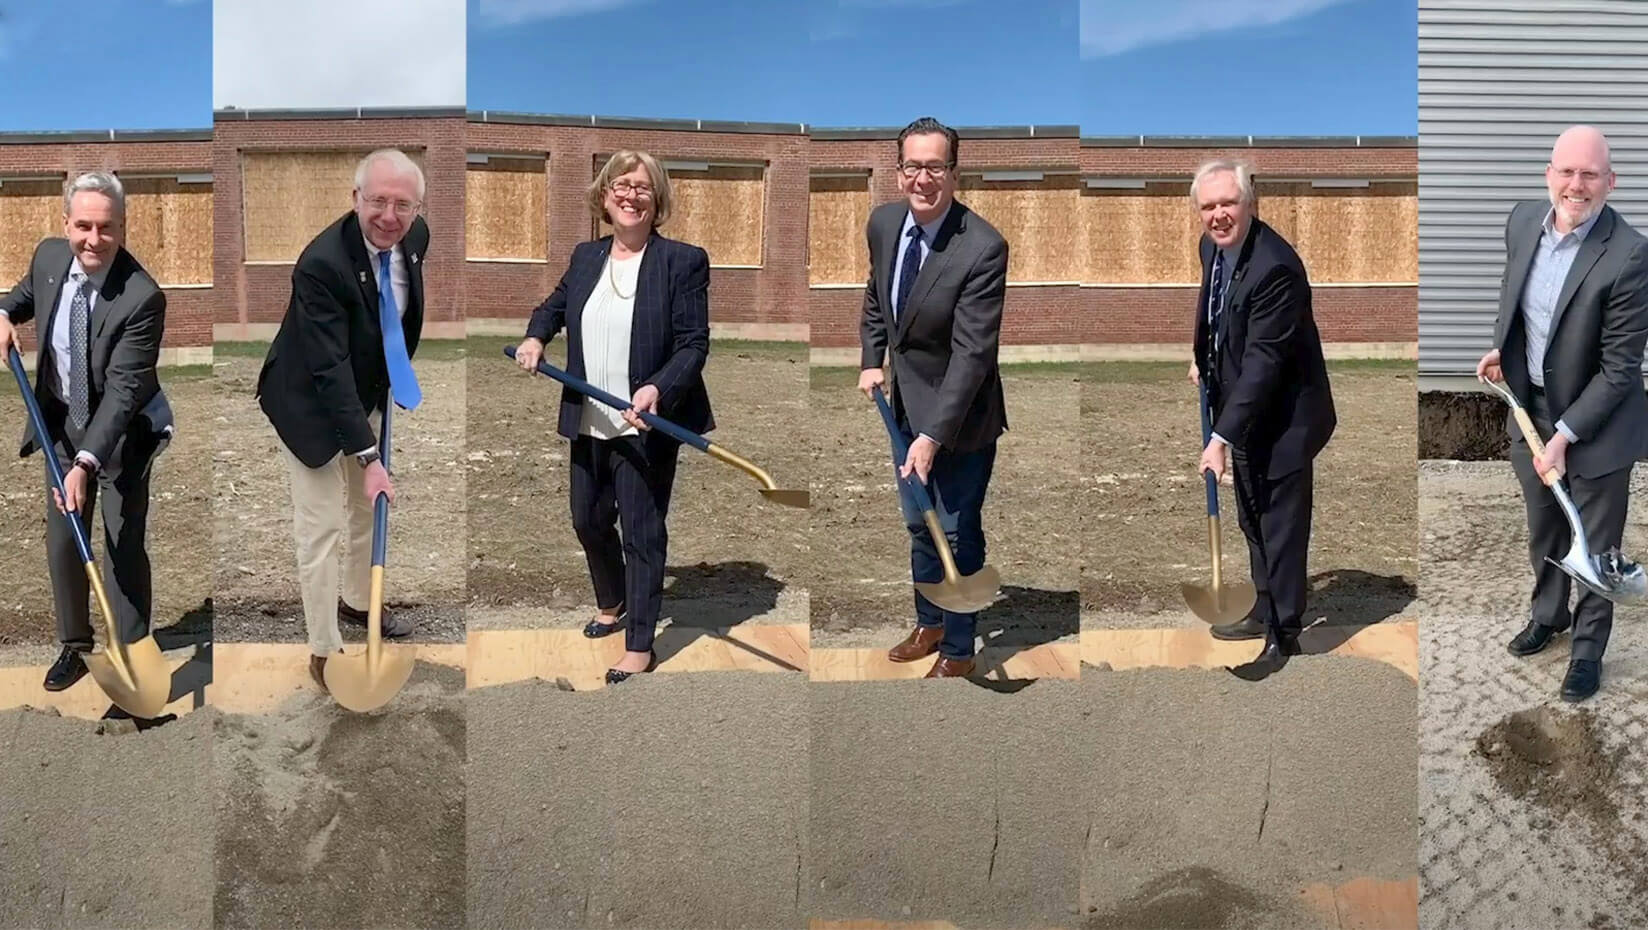 People with shovels at a virtual groundbreaking ceremony